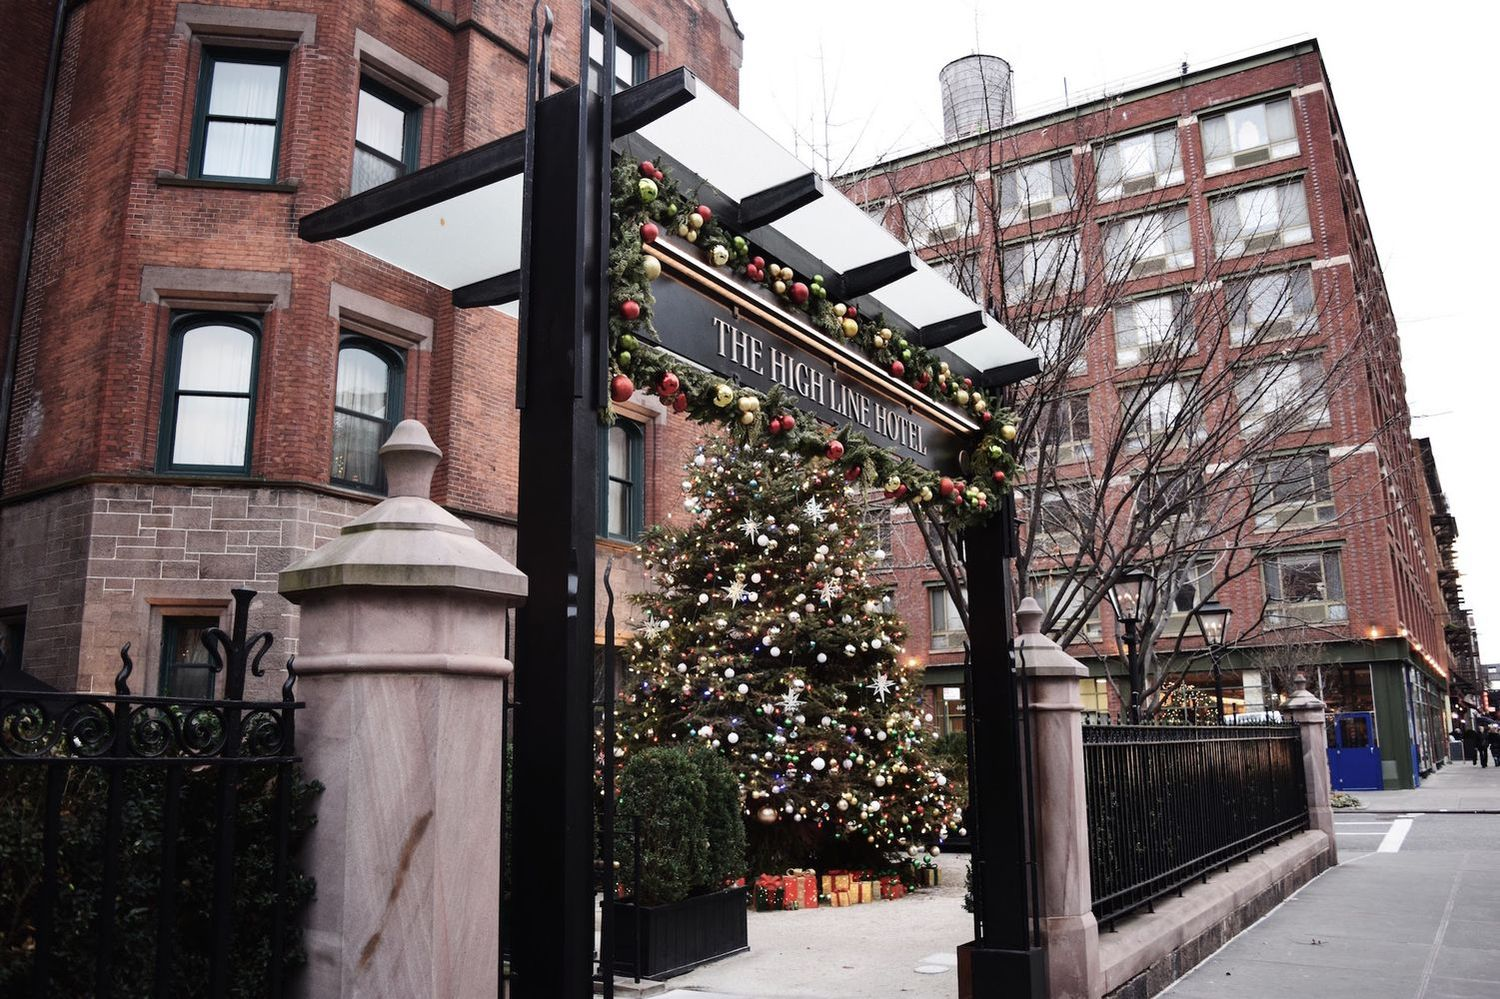 Highline Hotel Christmas Tree